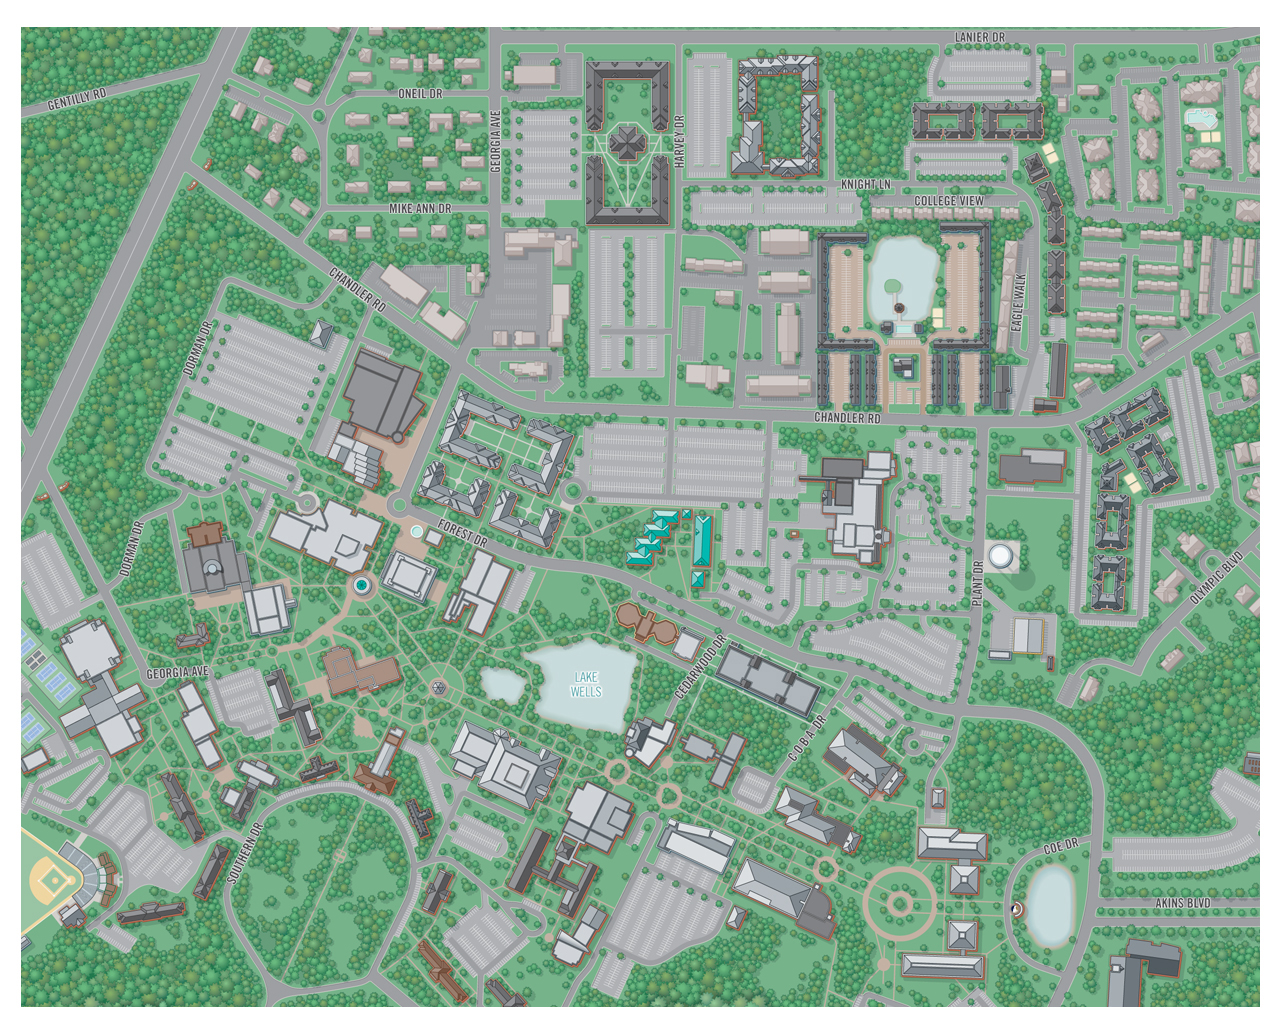 college campus map illustration georgia southern university. city  college campus map illustration  design